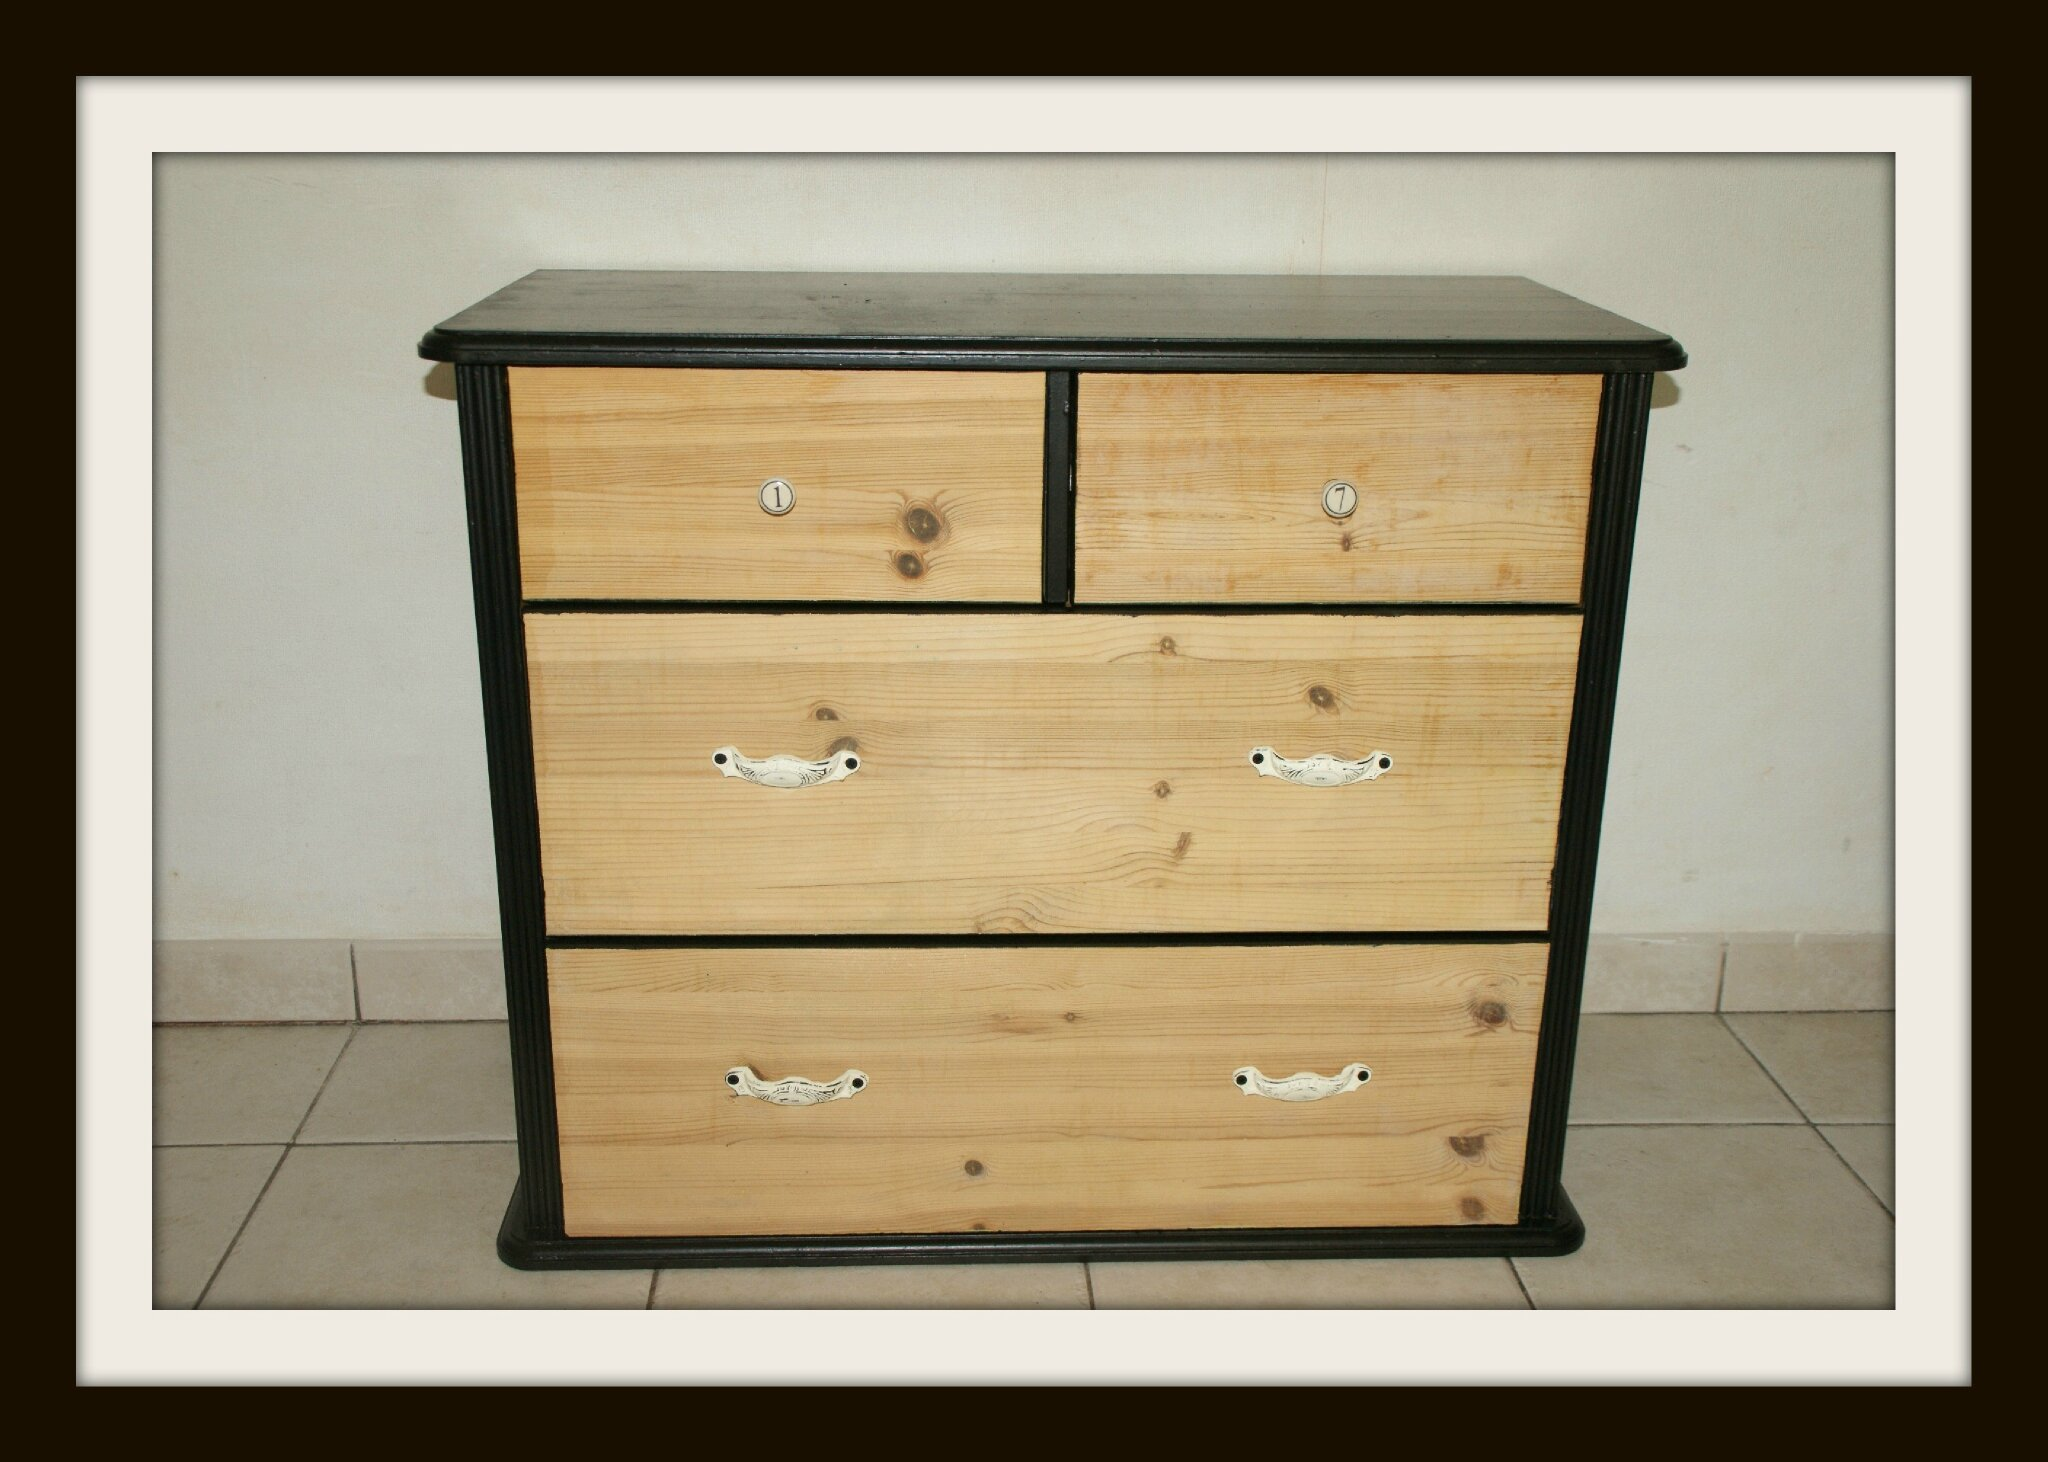 commode noire et bois la p 39 tite mouche. Black Bedroom Furniture Sets. Home Design Ideas